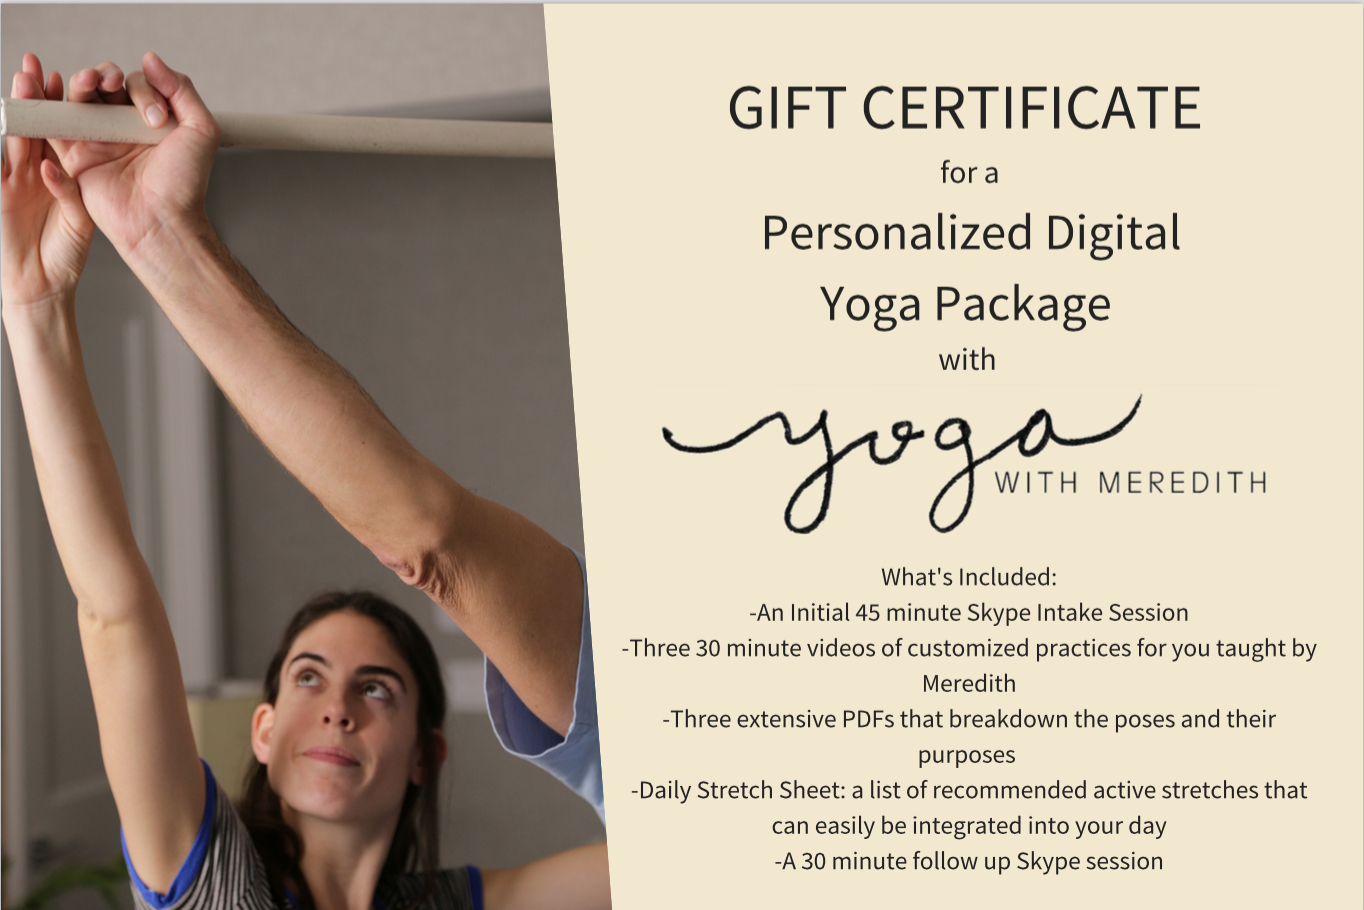 Want to give the gift of yoga? - Contact me for gift certificates or further promotional materials for fundraisers.